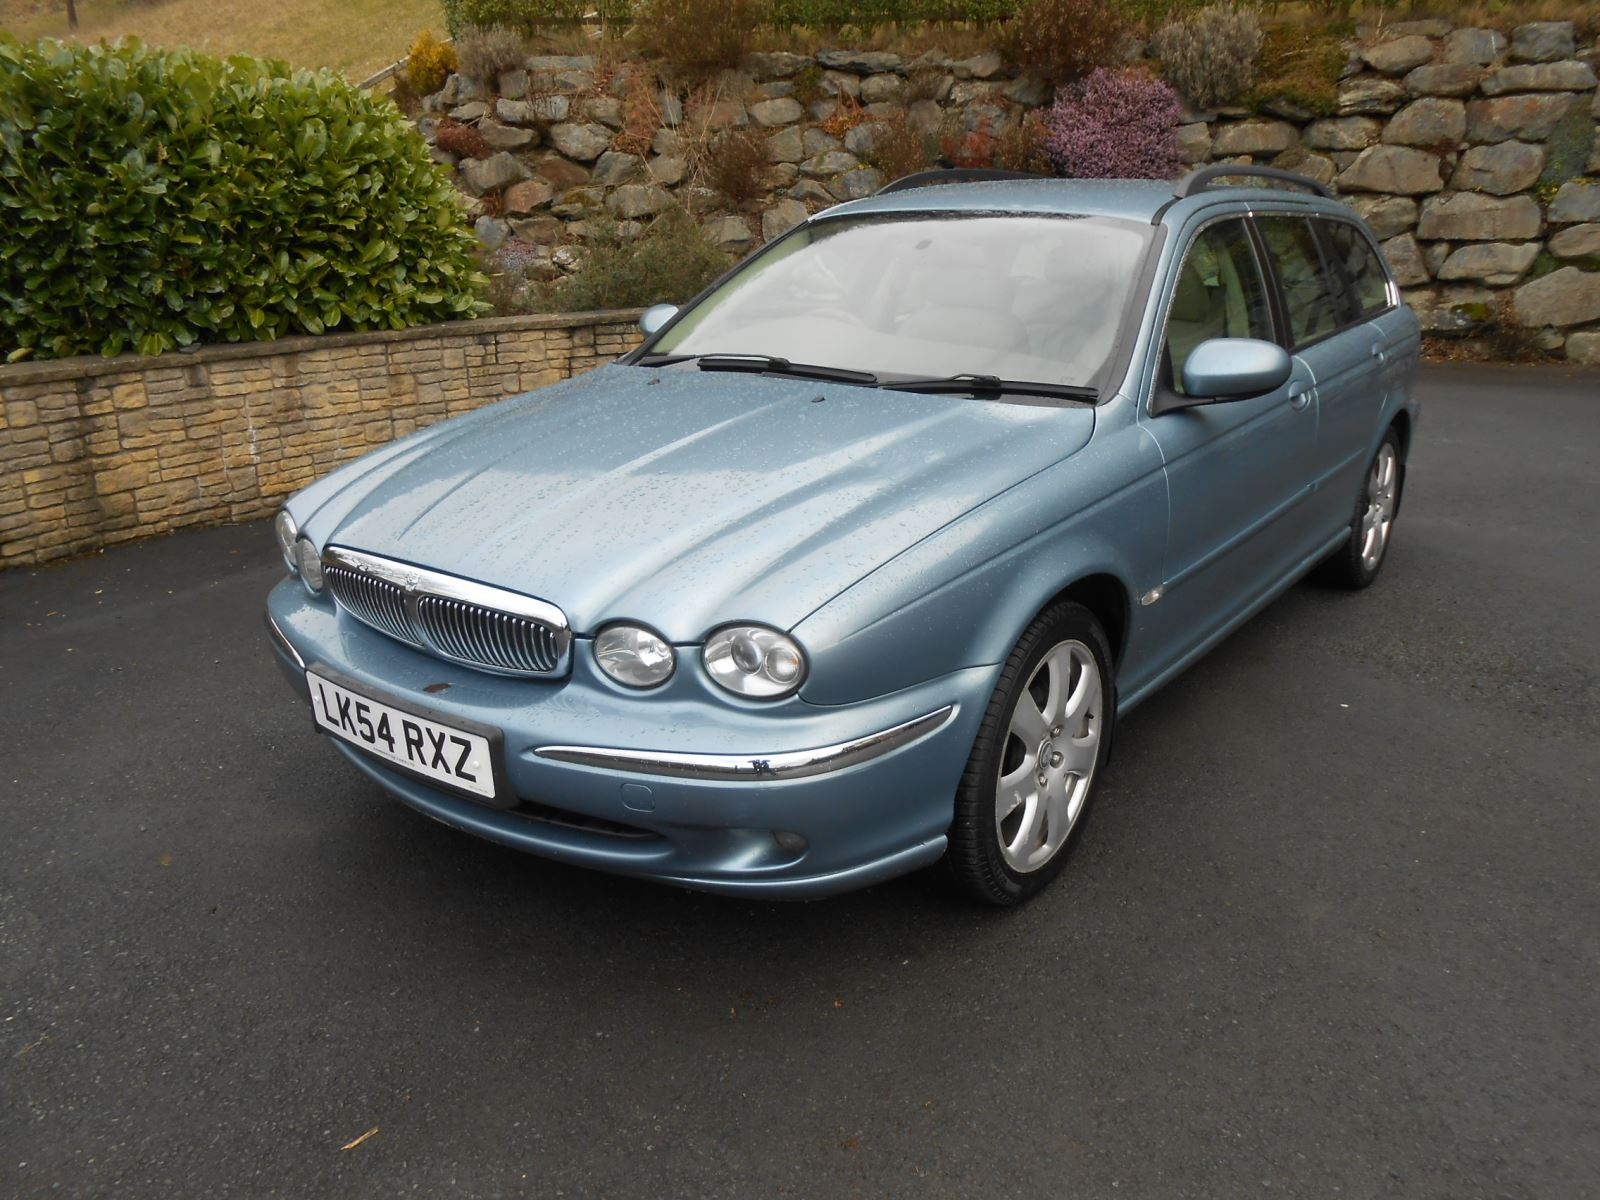 jaguar x type 3 0 v6 se estate awd car for sale llanidloes. Black Bedroom Furniture Sets. Home Design Ideas